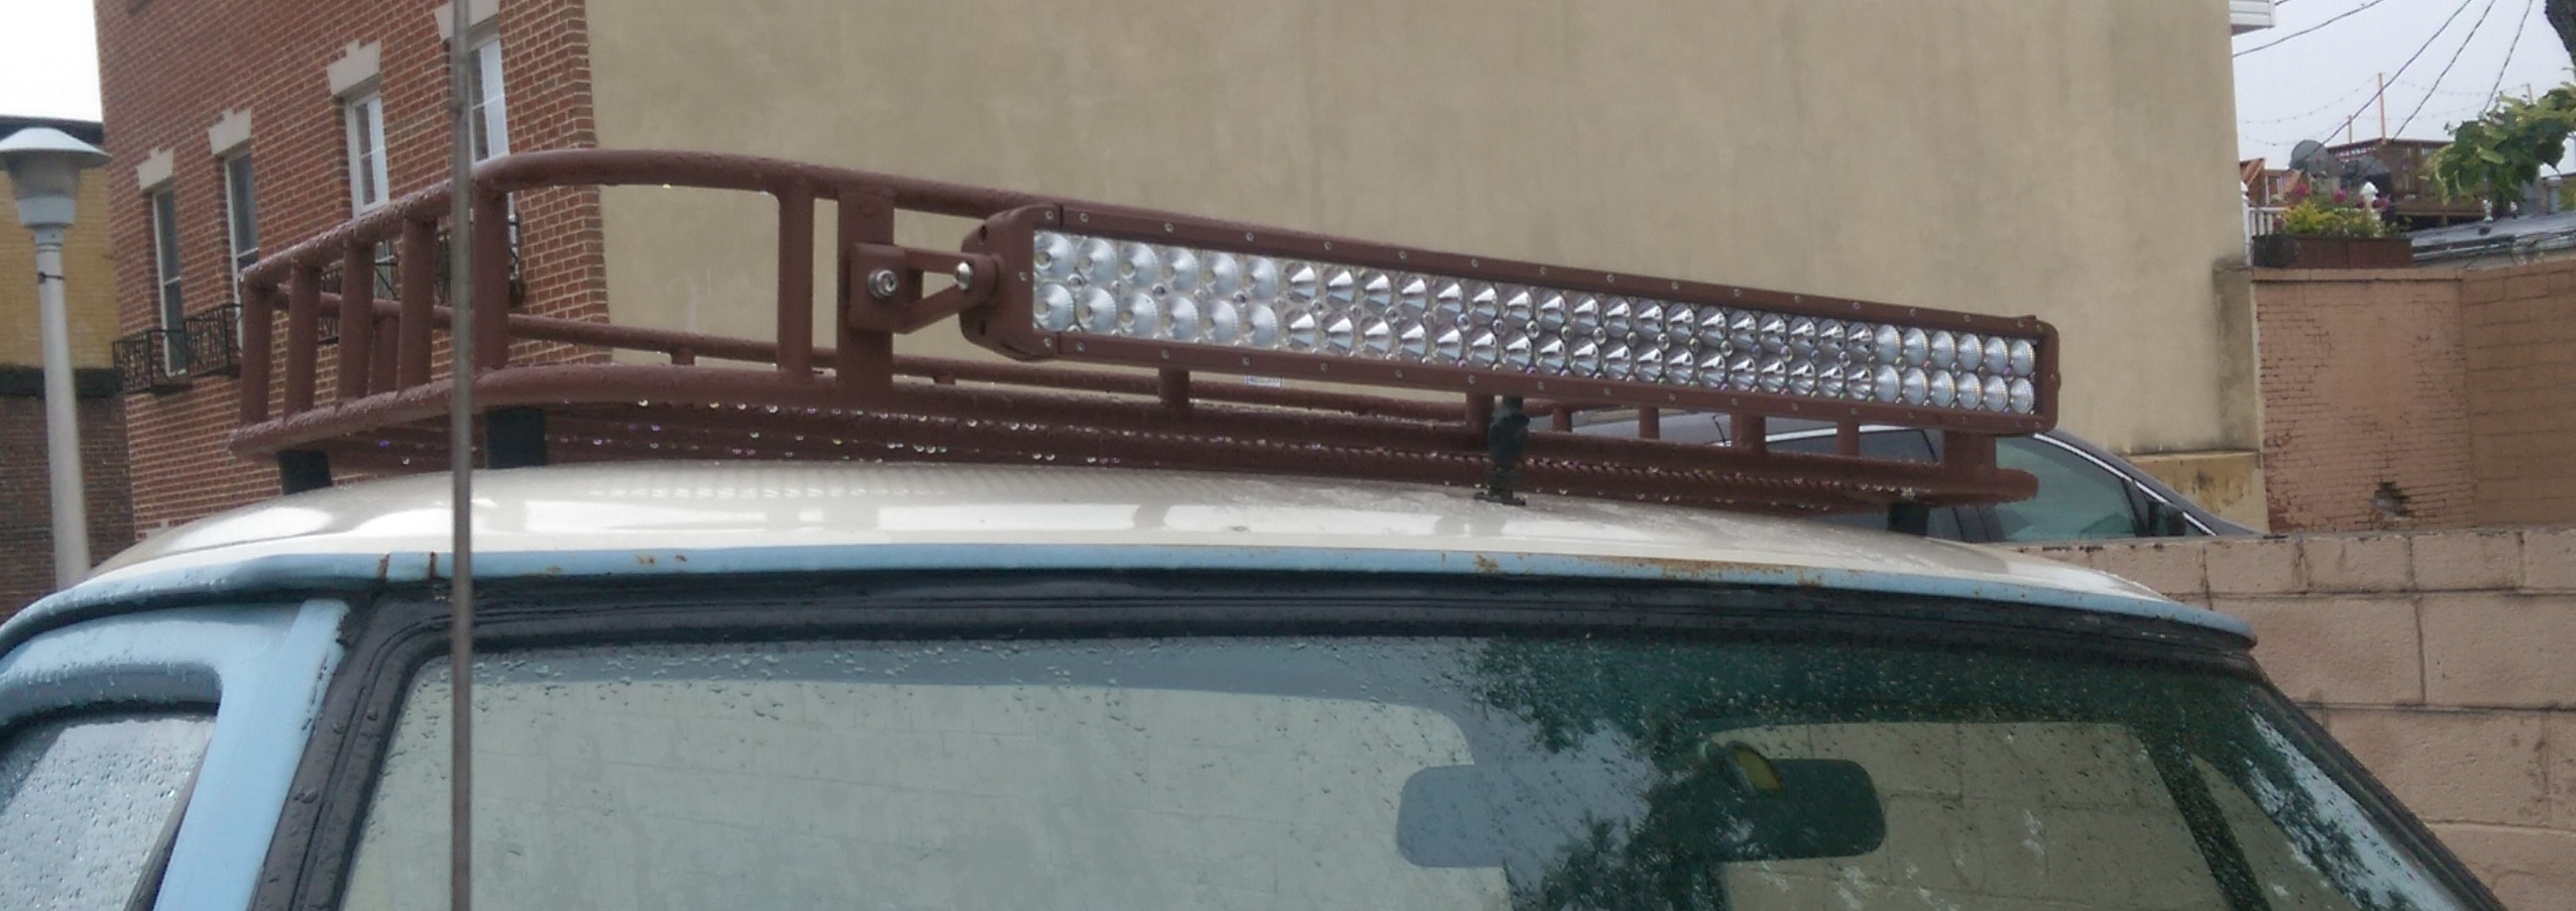 the finished roof rack